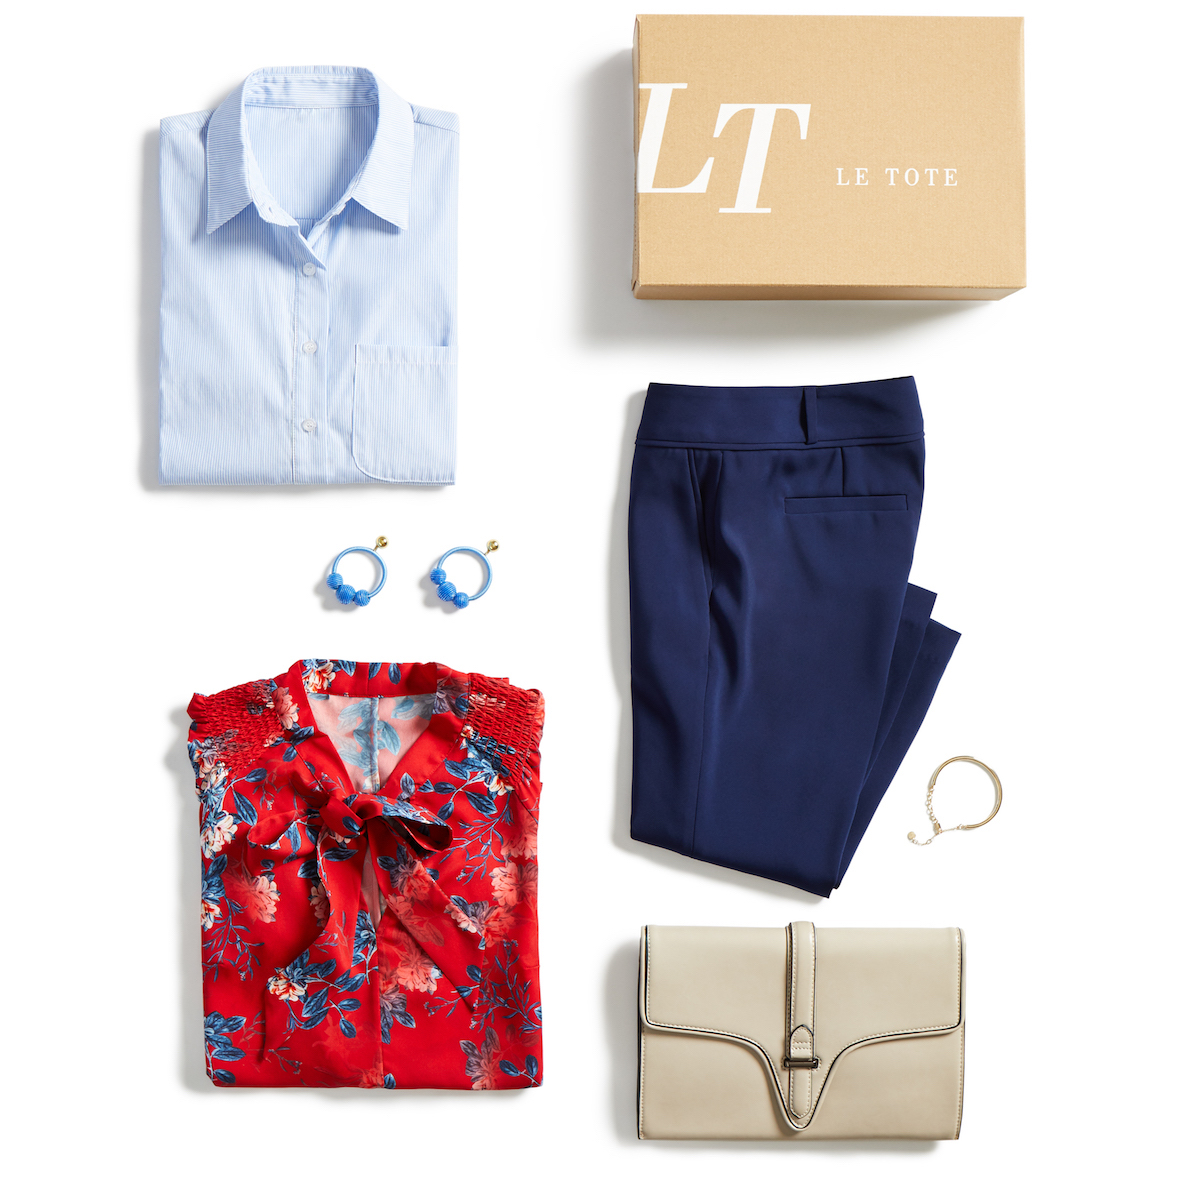 le tote fashion subscription box